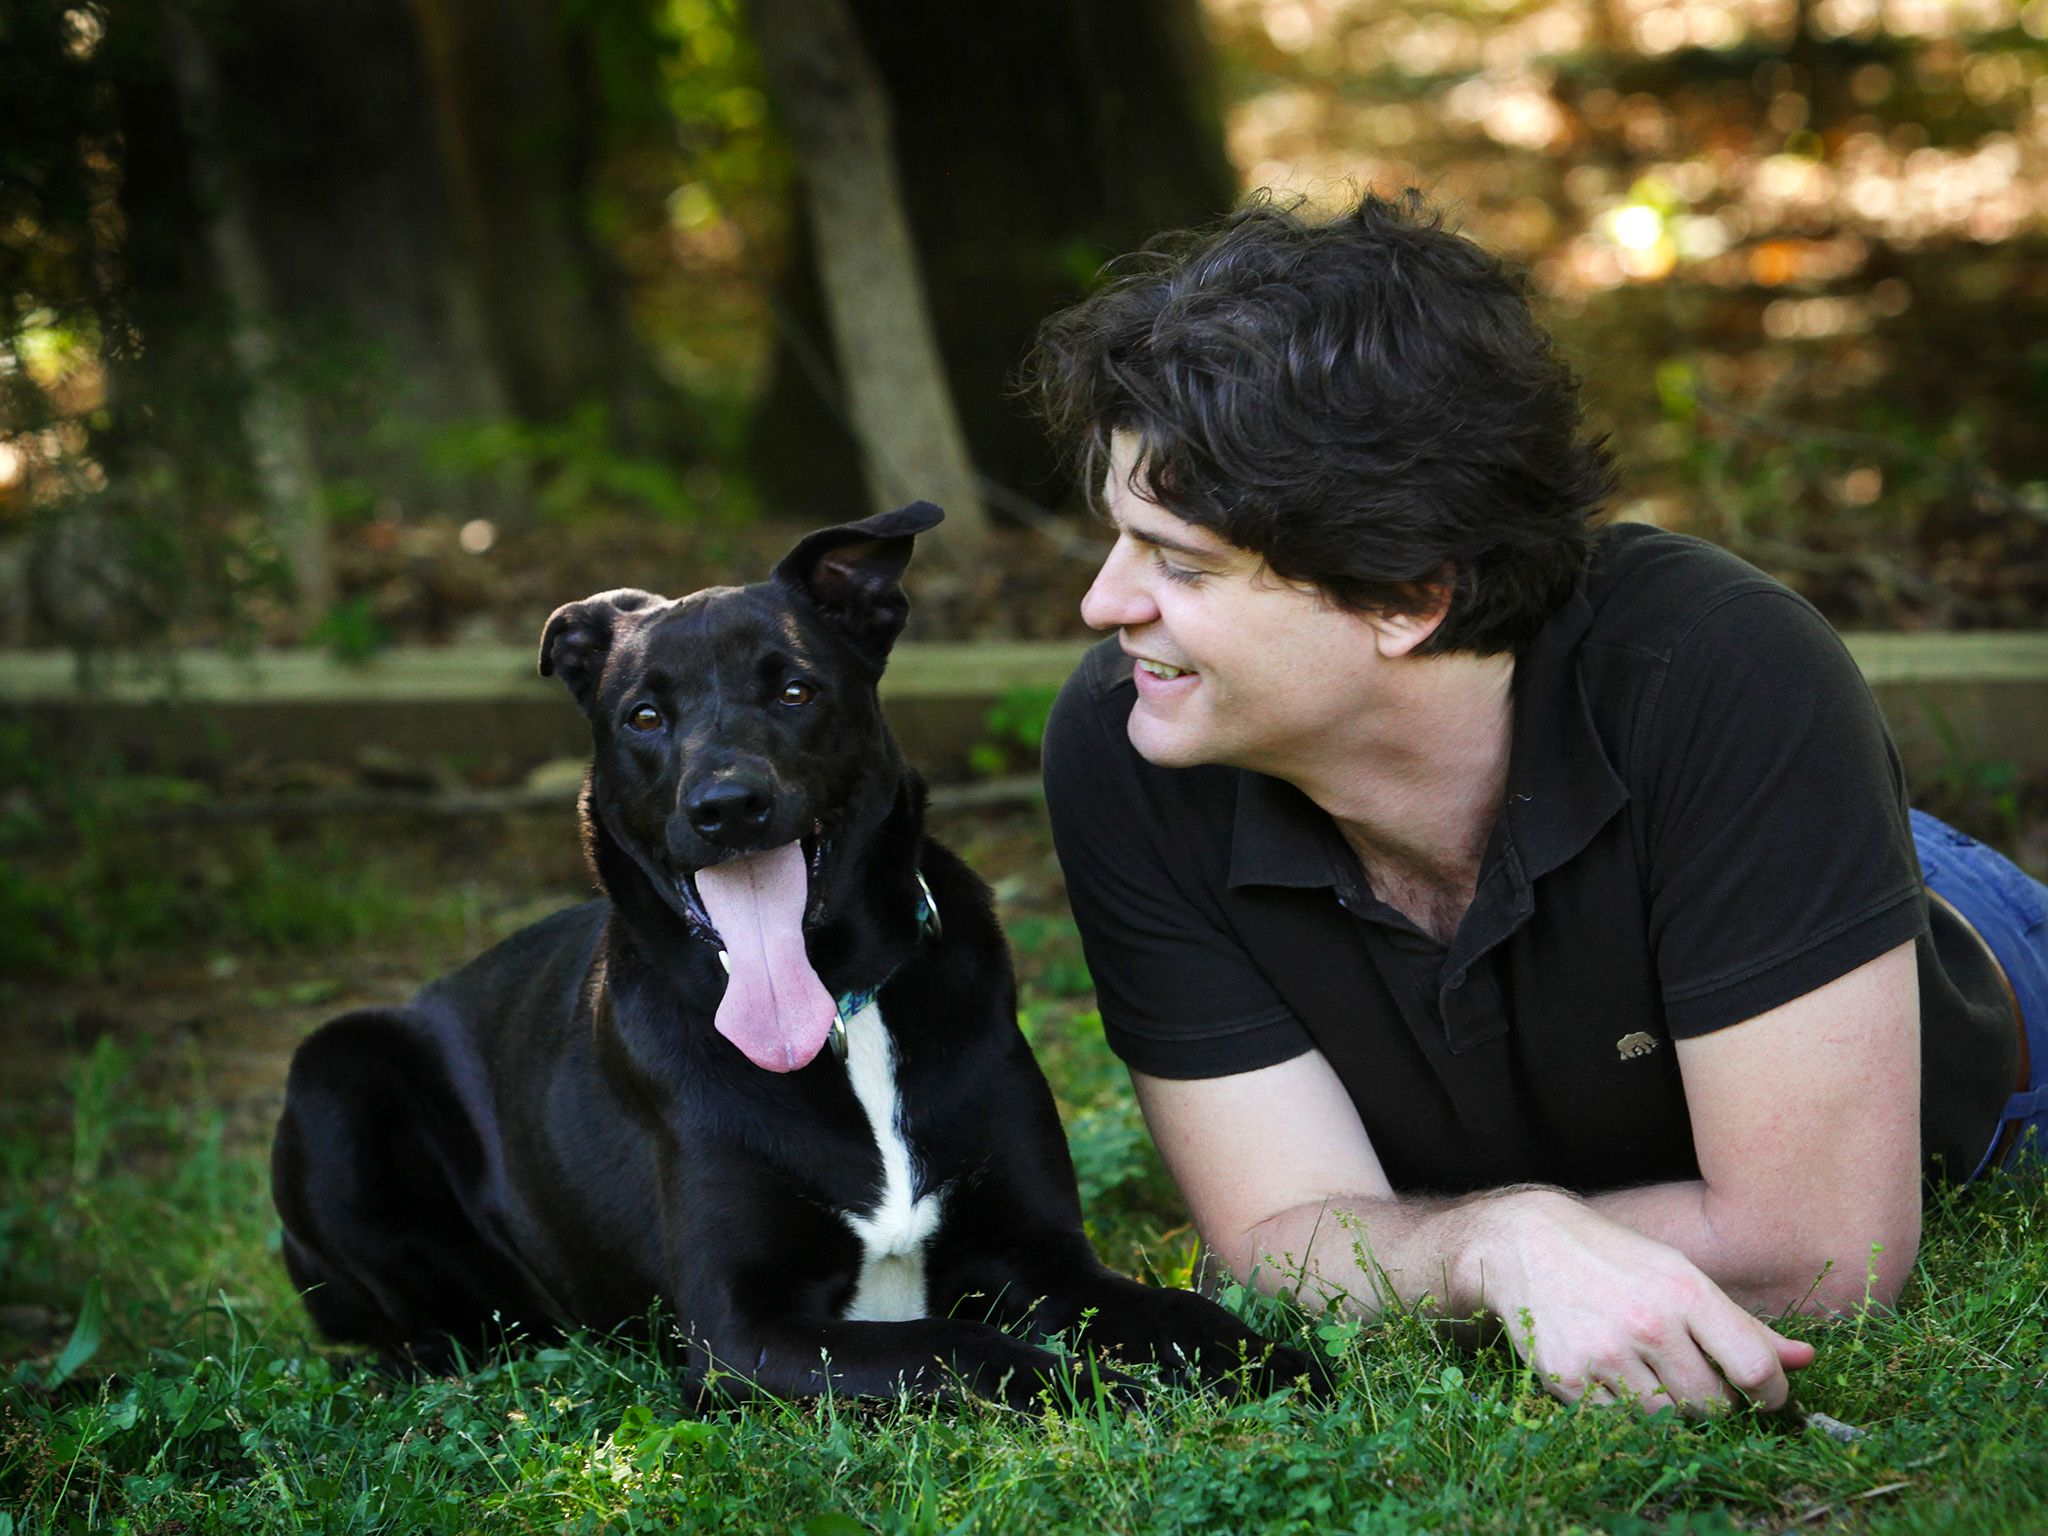 Dr. Brian Hare with Tassie the dog. This image is from Is Your Dog A Genius? [Photo of the day - April 2015]